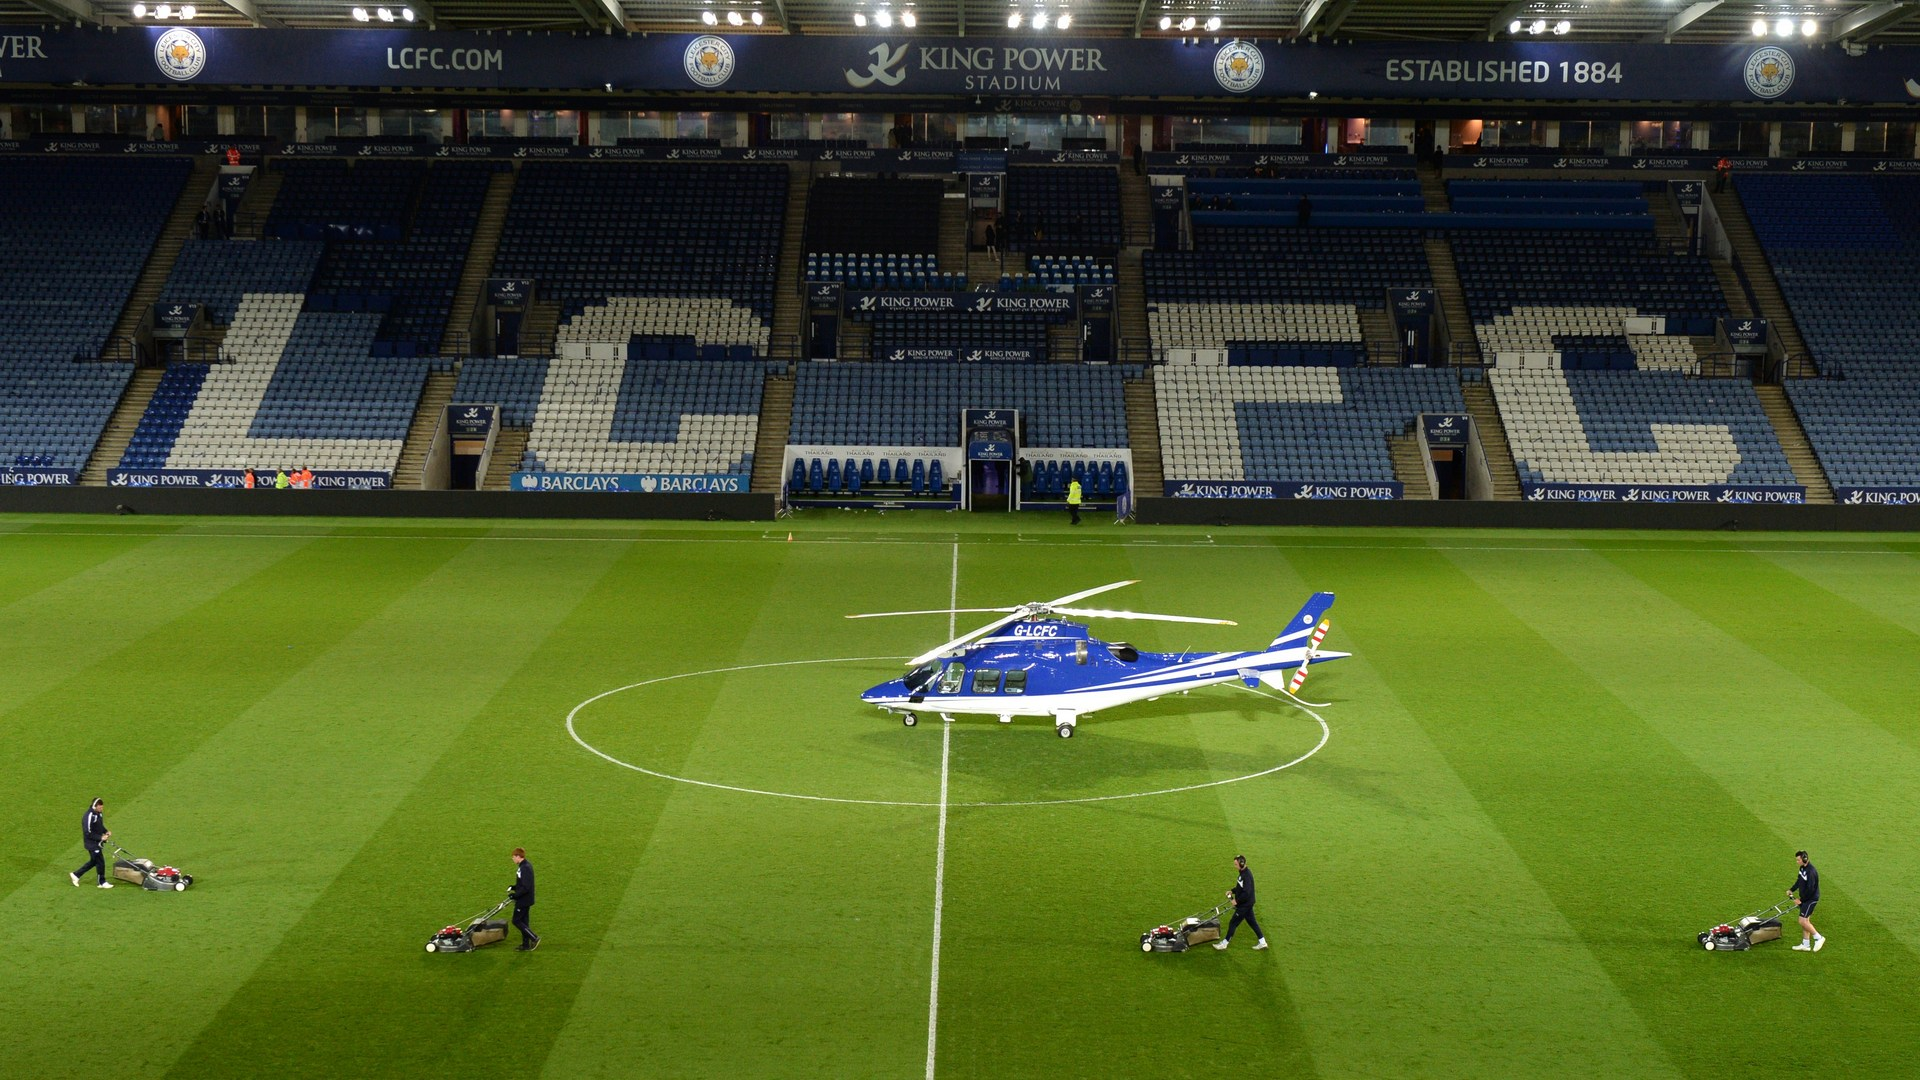 Helicopter crashes outside Leicester City's King Power Stadium after match